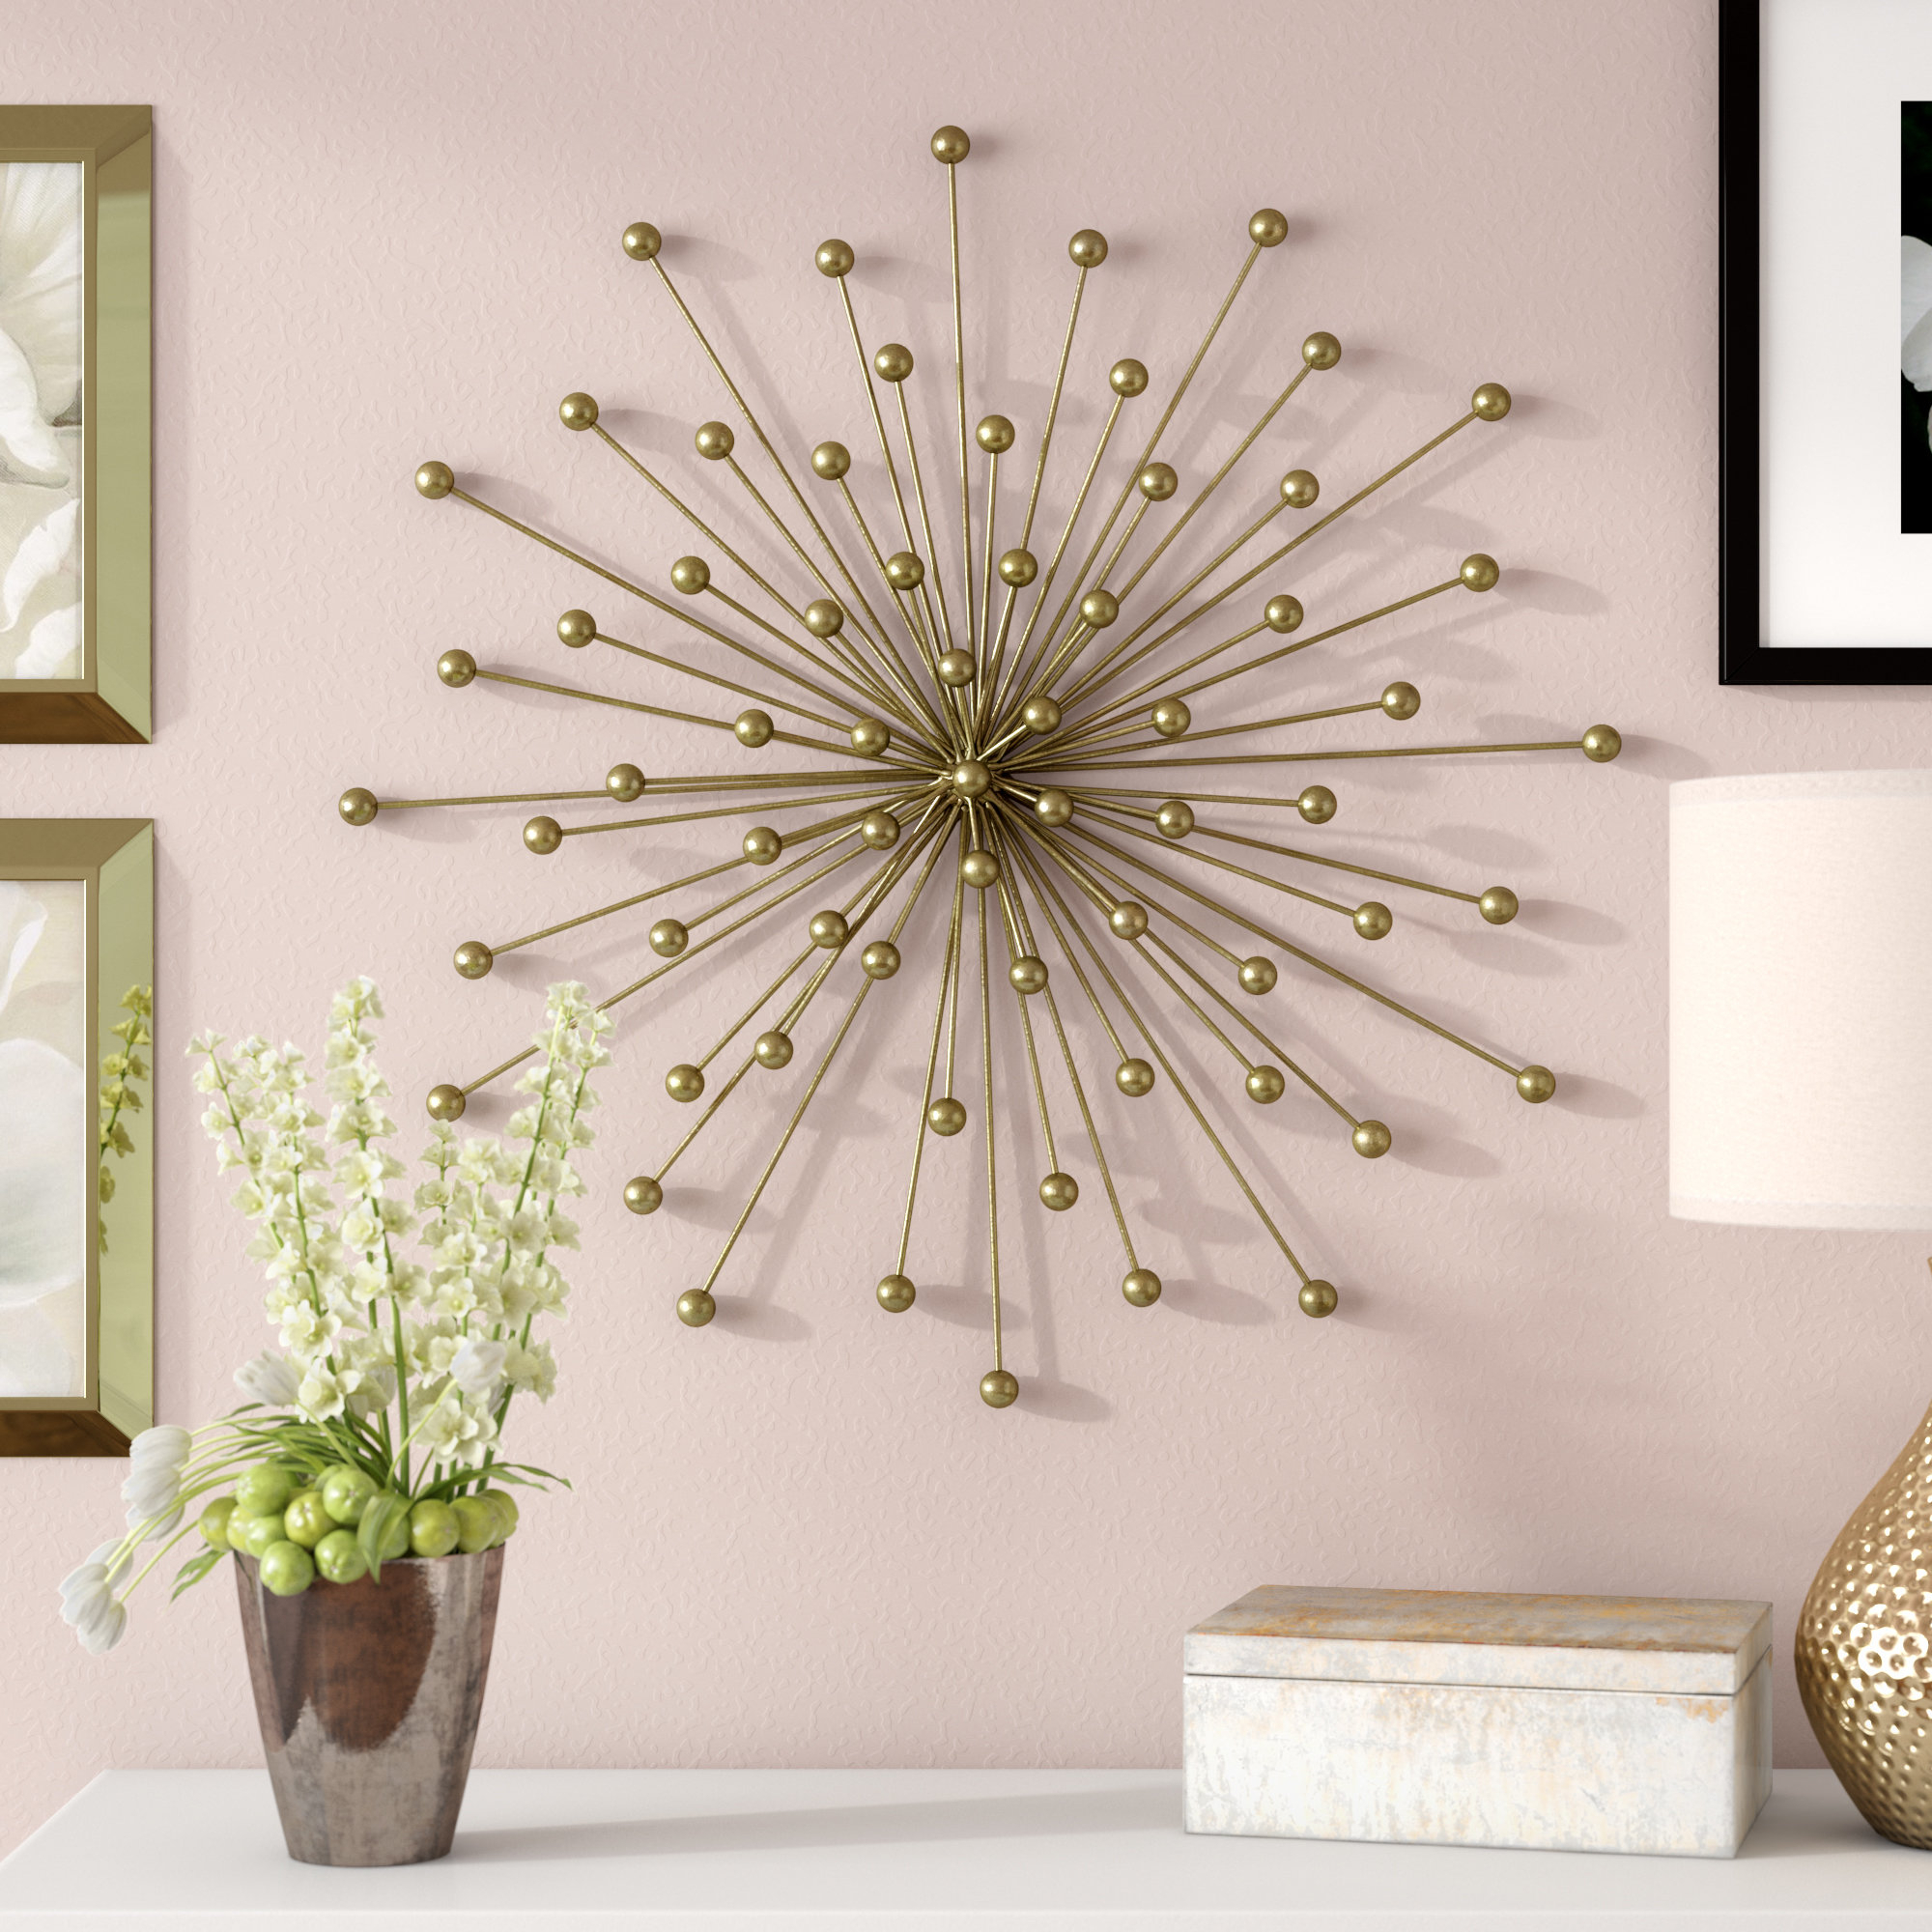 Starburst Wall Decor By Willa Arlo Interiors Within Most Popular Willa Arlo Interiors Burst Wall Décor & Reviews (View 16 of 20)